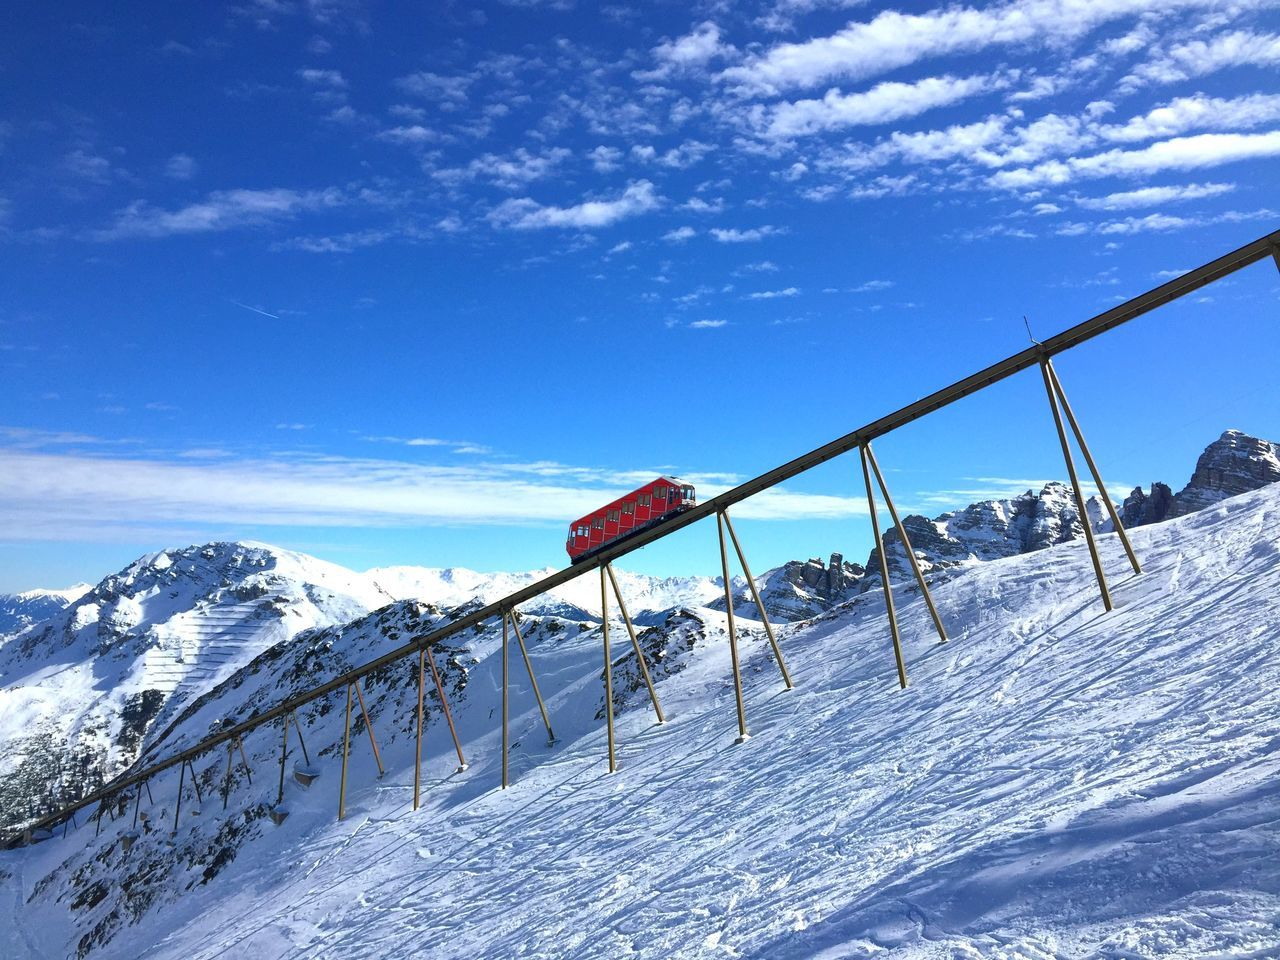 snow, cold temperature, winter, weather, nature, sky, day, beauty in nature, white color, outdoors, railing, cloud - sky, mountain, frozen, scenics, blue, tranquil scene, snowcapped mountain, low angle view, mountain range, no people, landscape, tree, ski lift